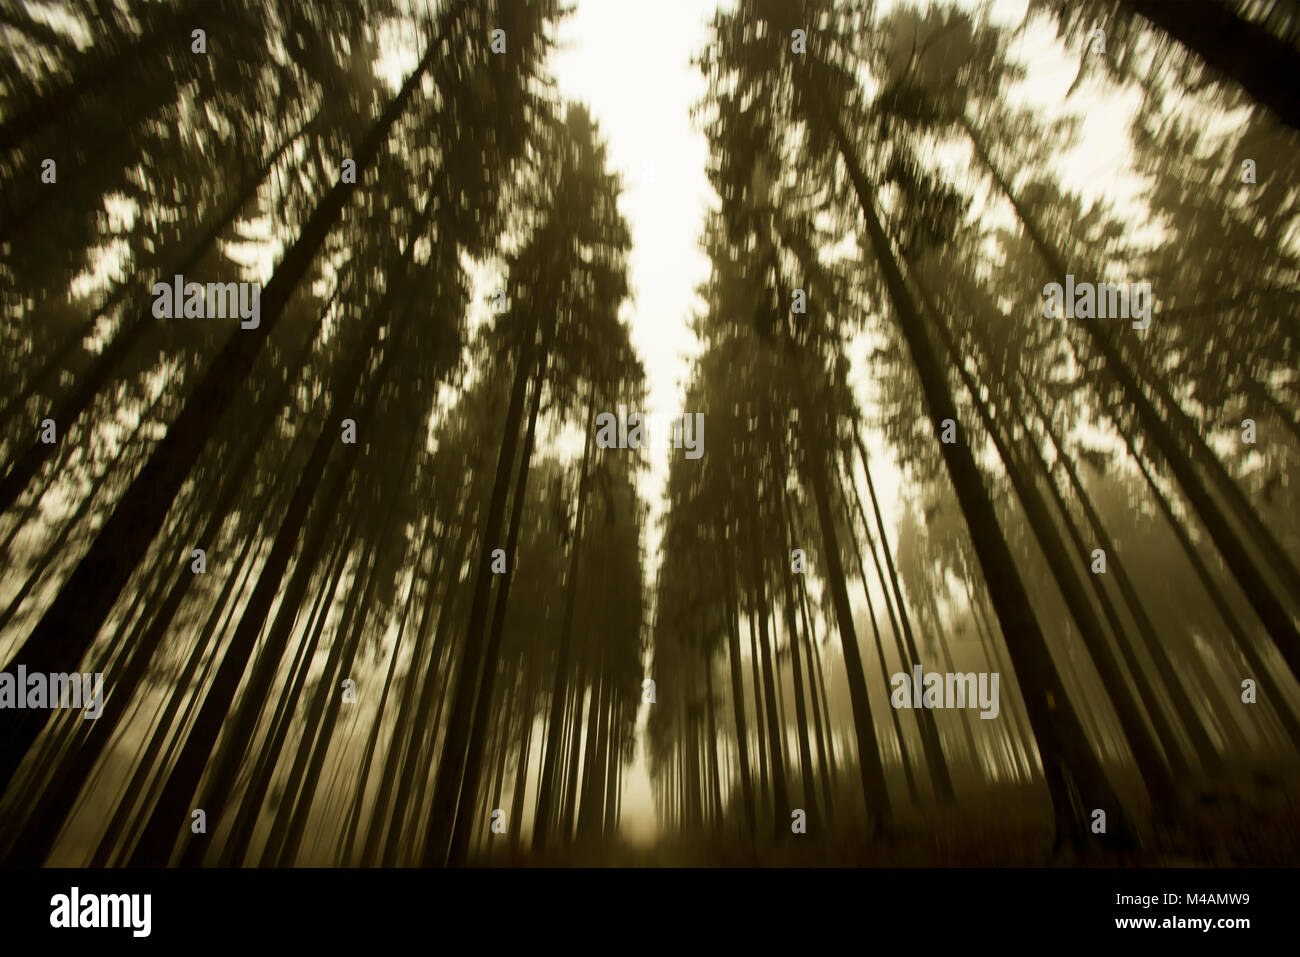 Traumatic path in a forest Stock Photo